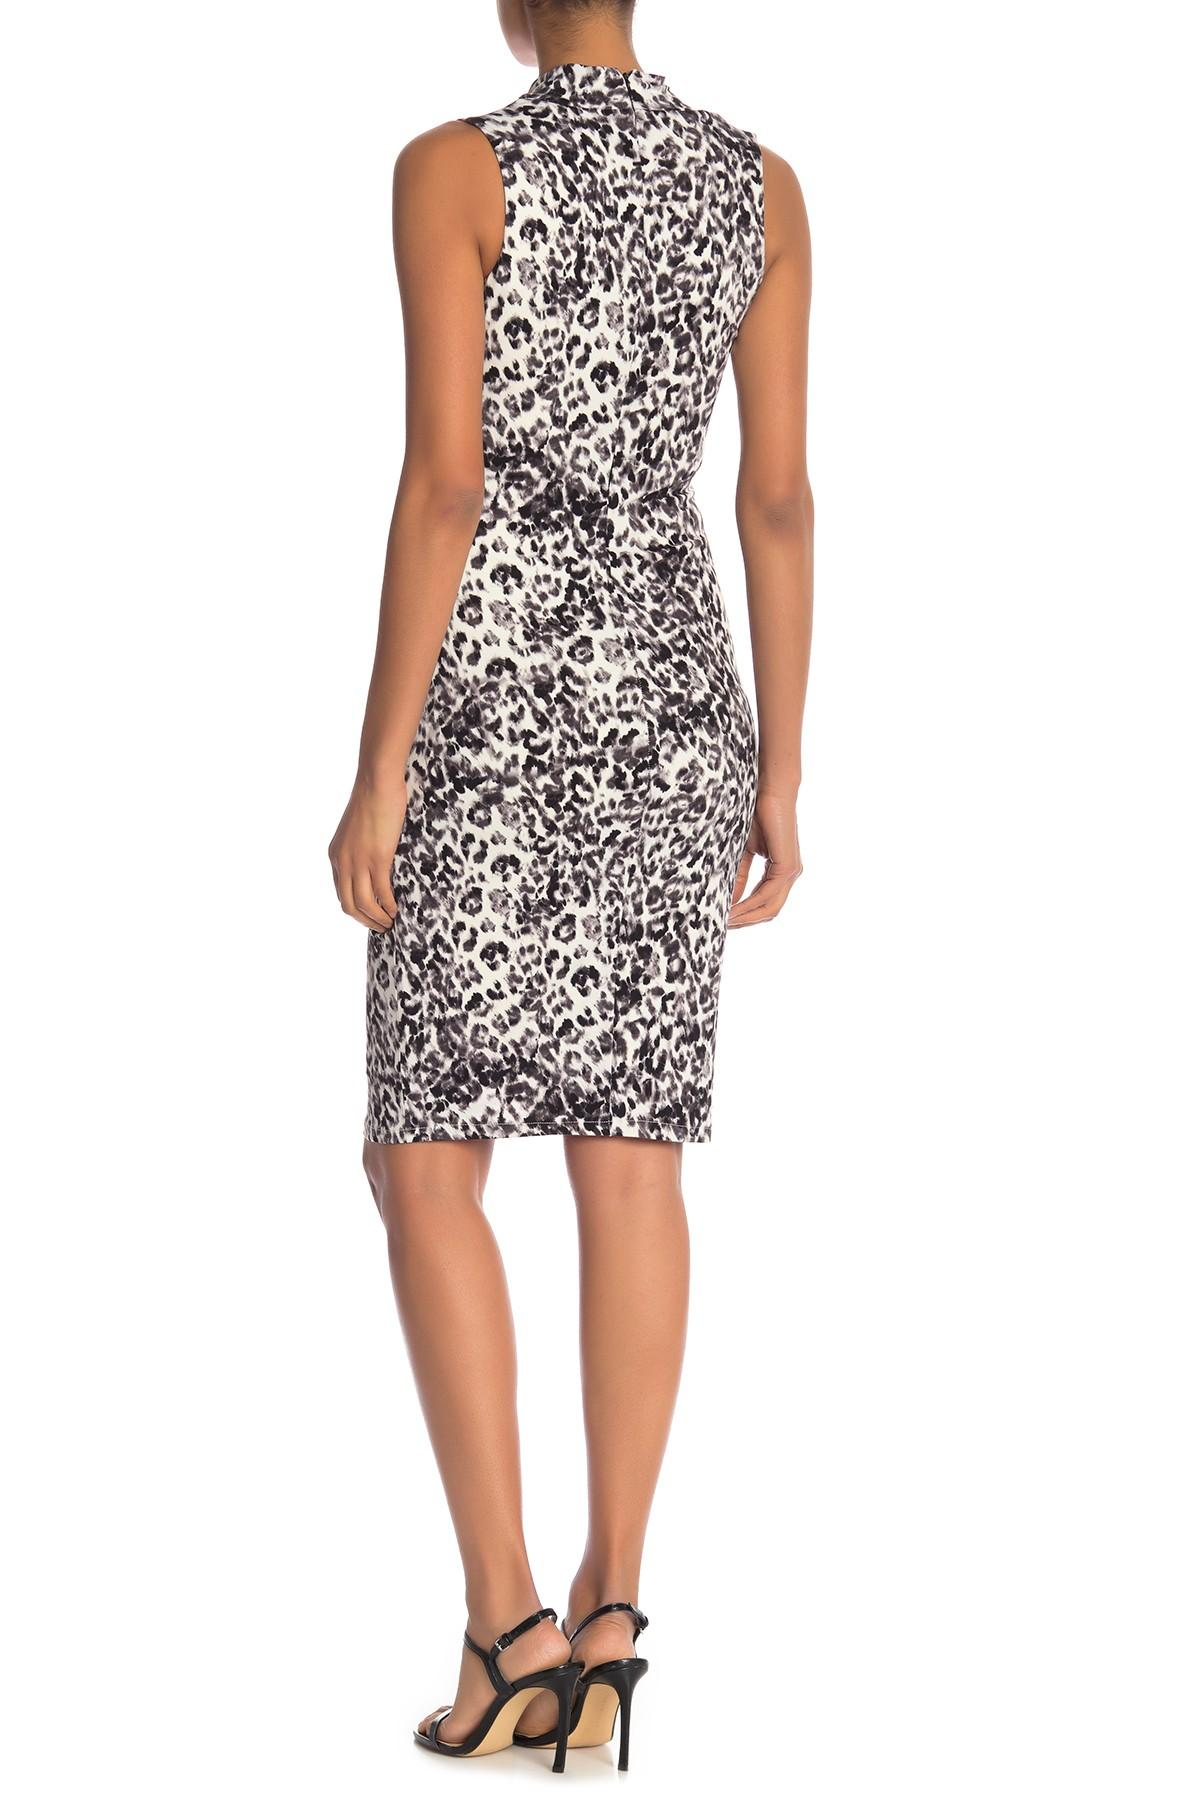 9dcb71af7f32 RACHEL Rachel Roy - Black Axel Leopard Print Sheath Dress - Lyst. View  fullscreen